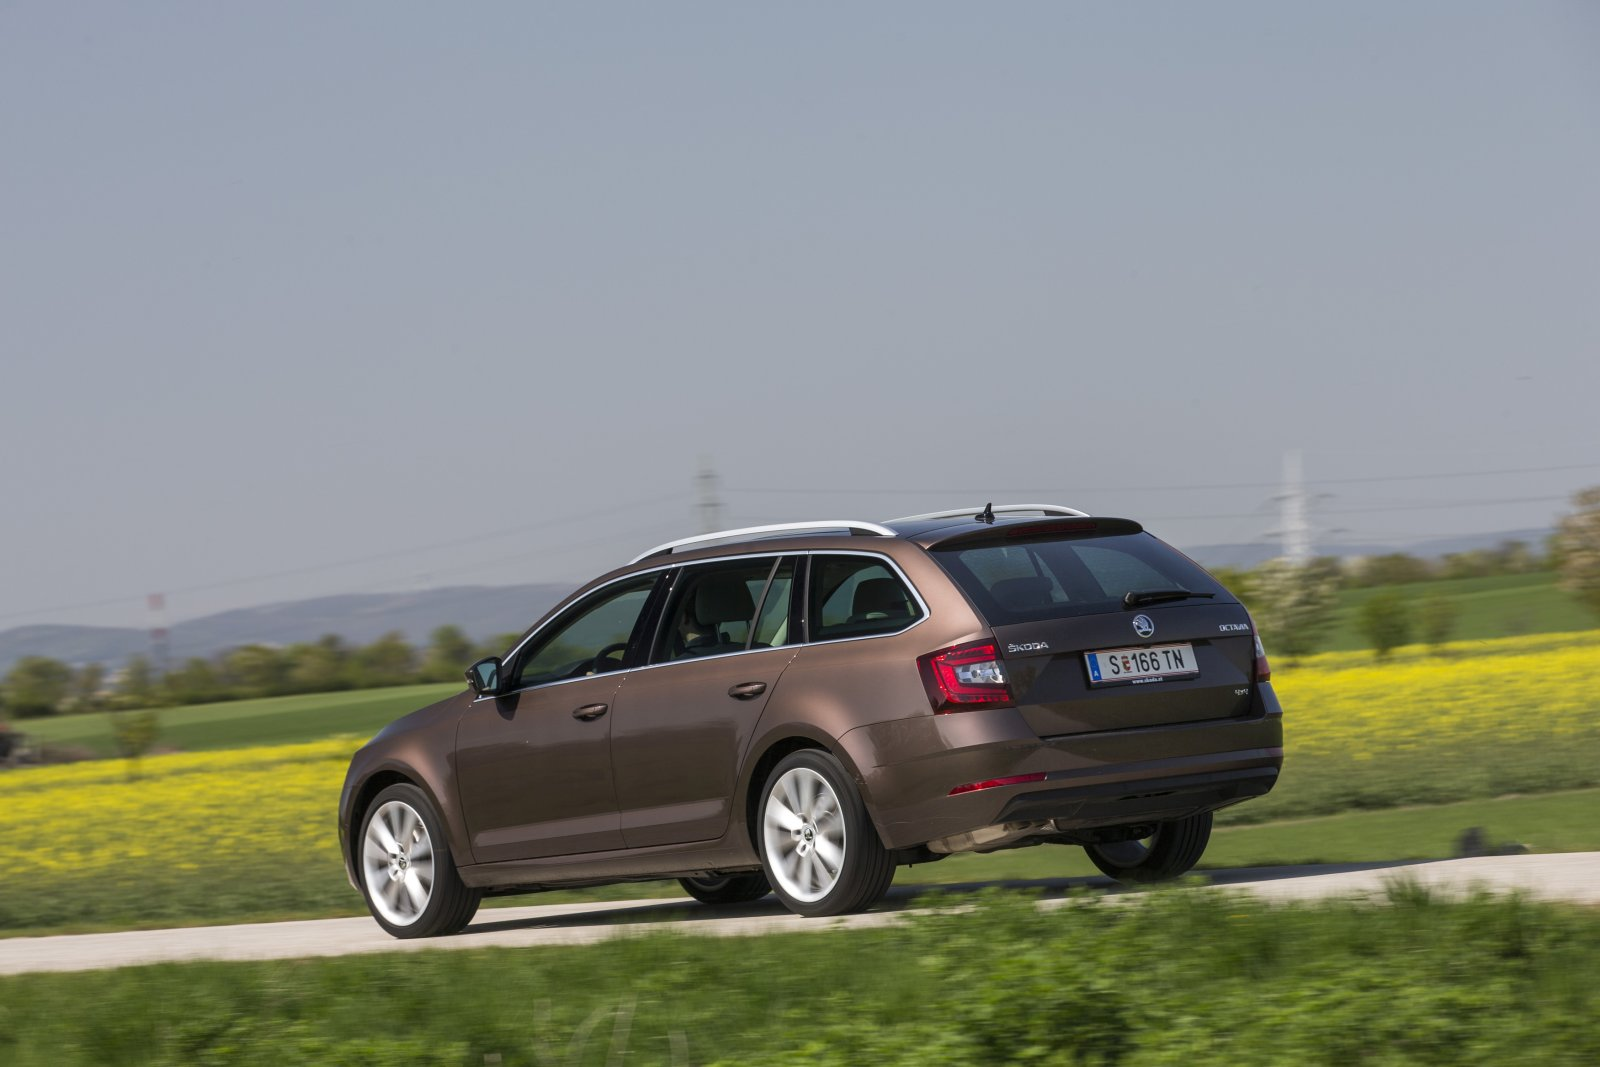 test skoda octavia combi 4x4 style tdi dsg alles auto. Black Bedroom Furniture Sets. Home Design Ideas